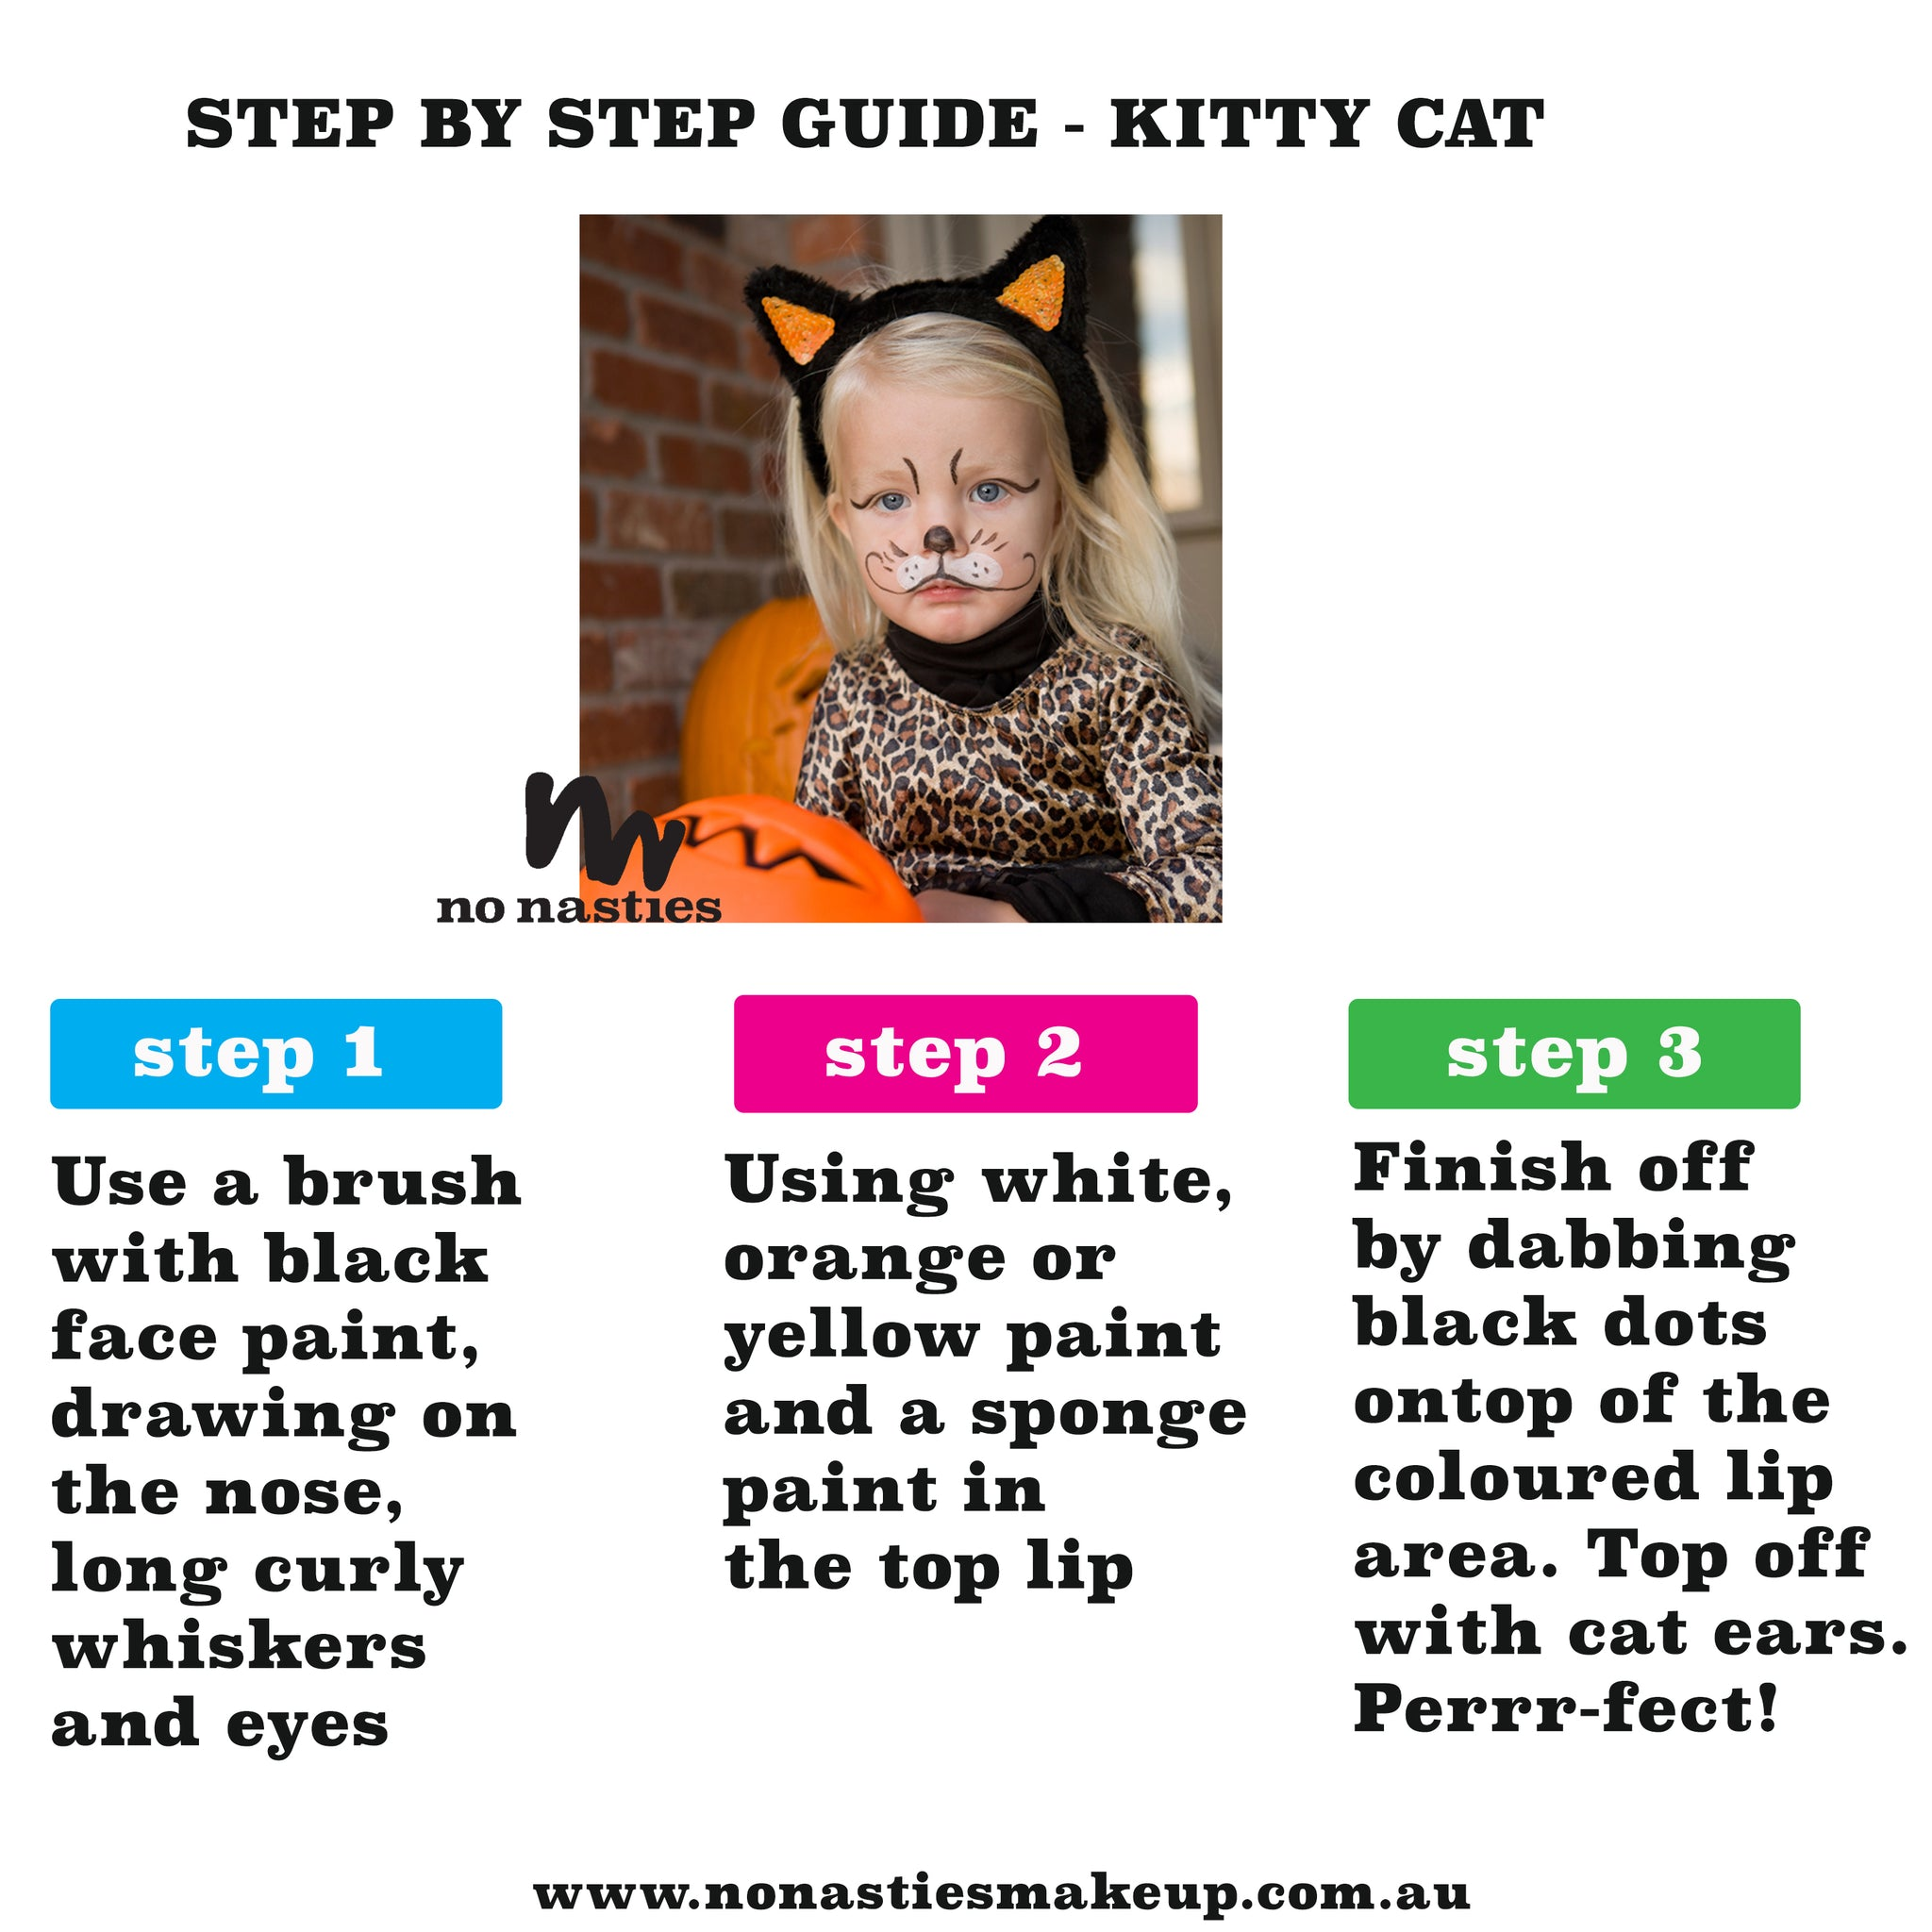 Kitty Cat Kitten Face Paint Guide by www.nonastiesmakeup.com.au